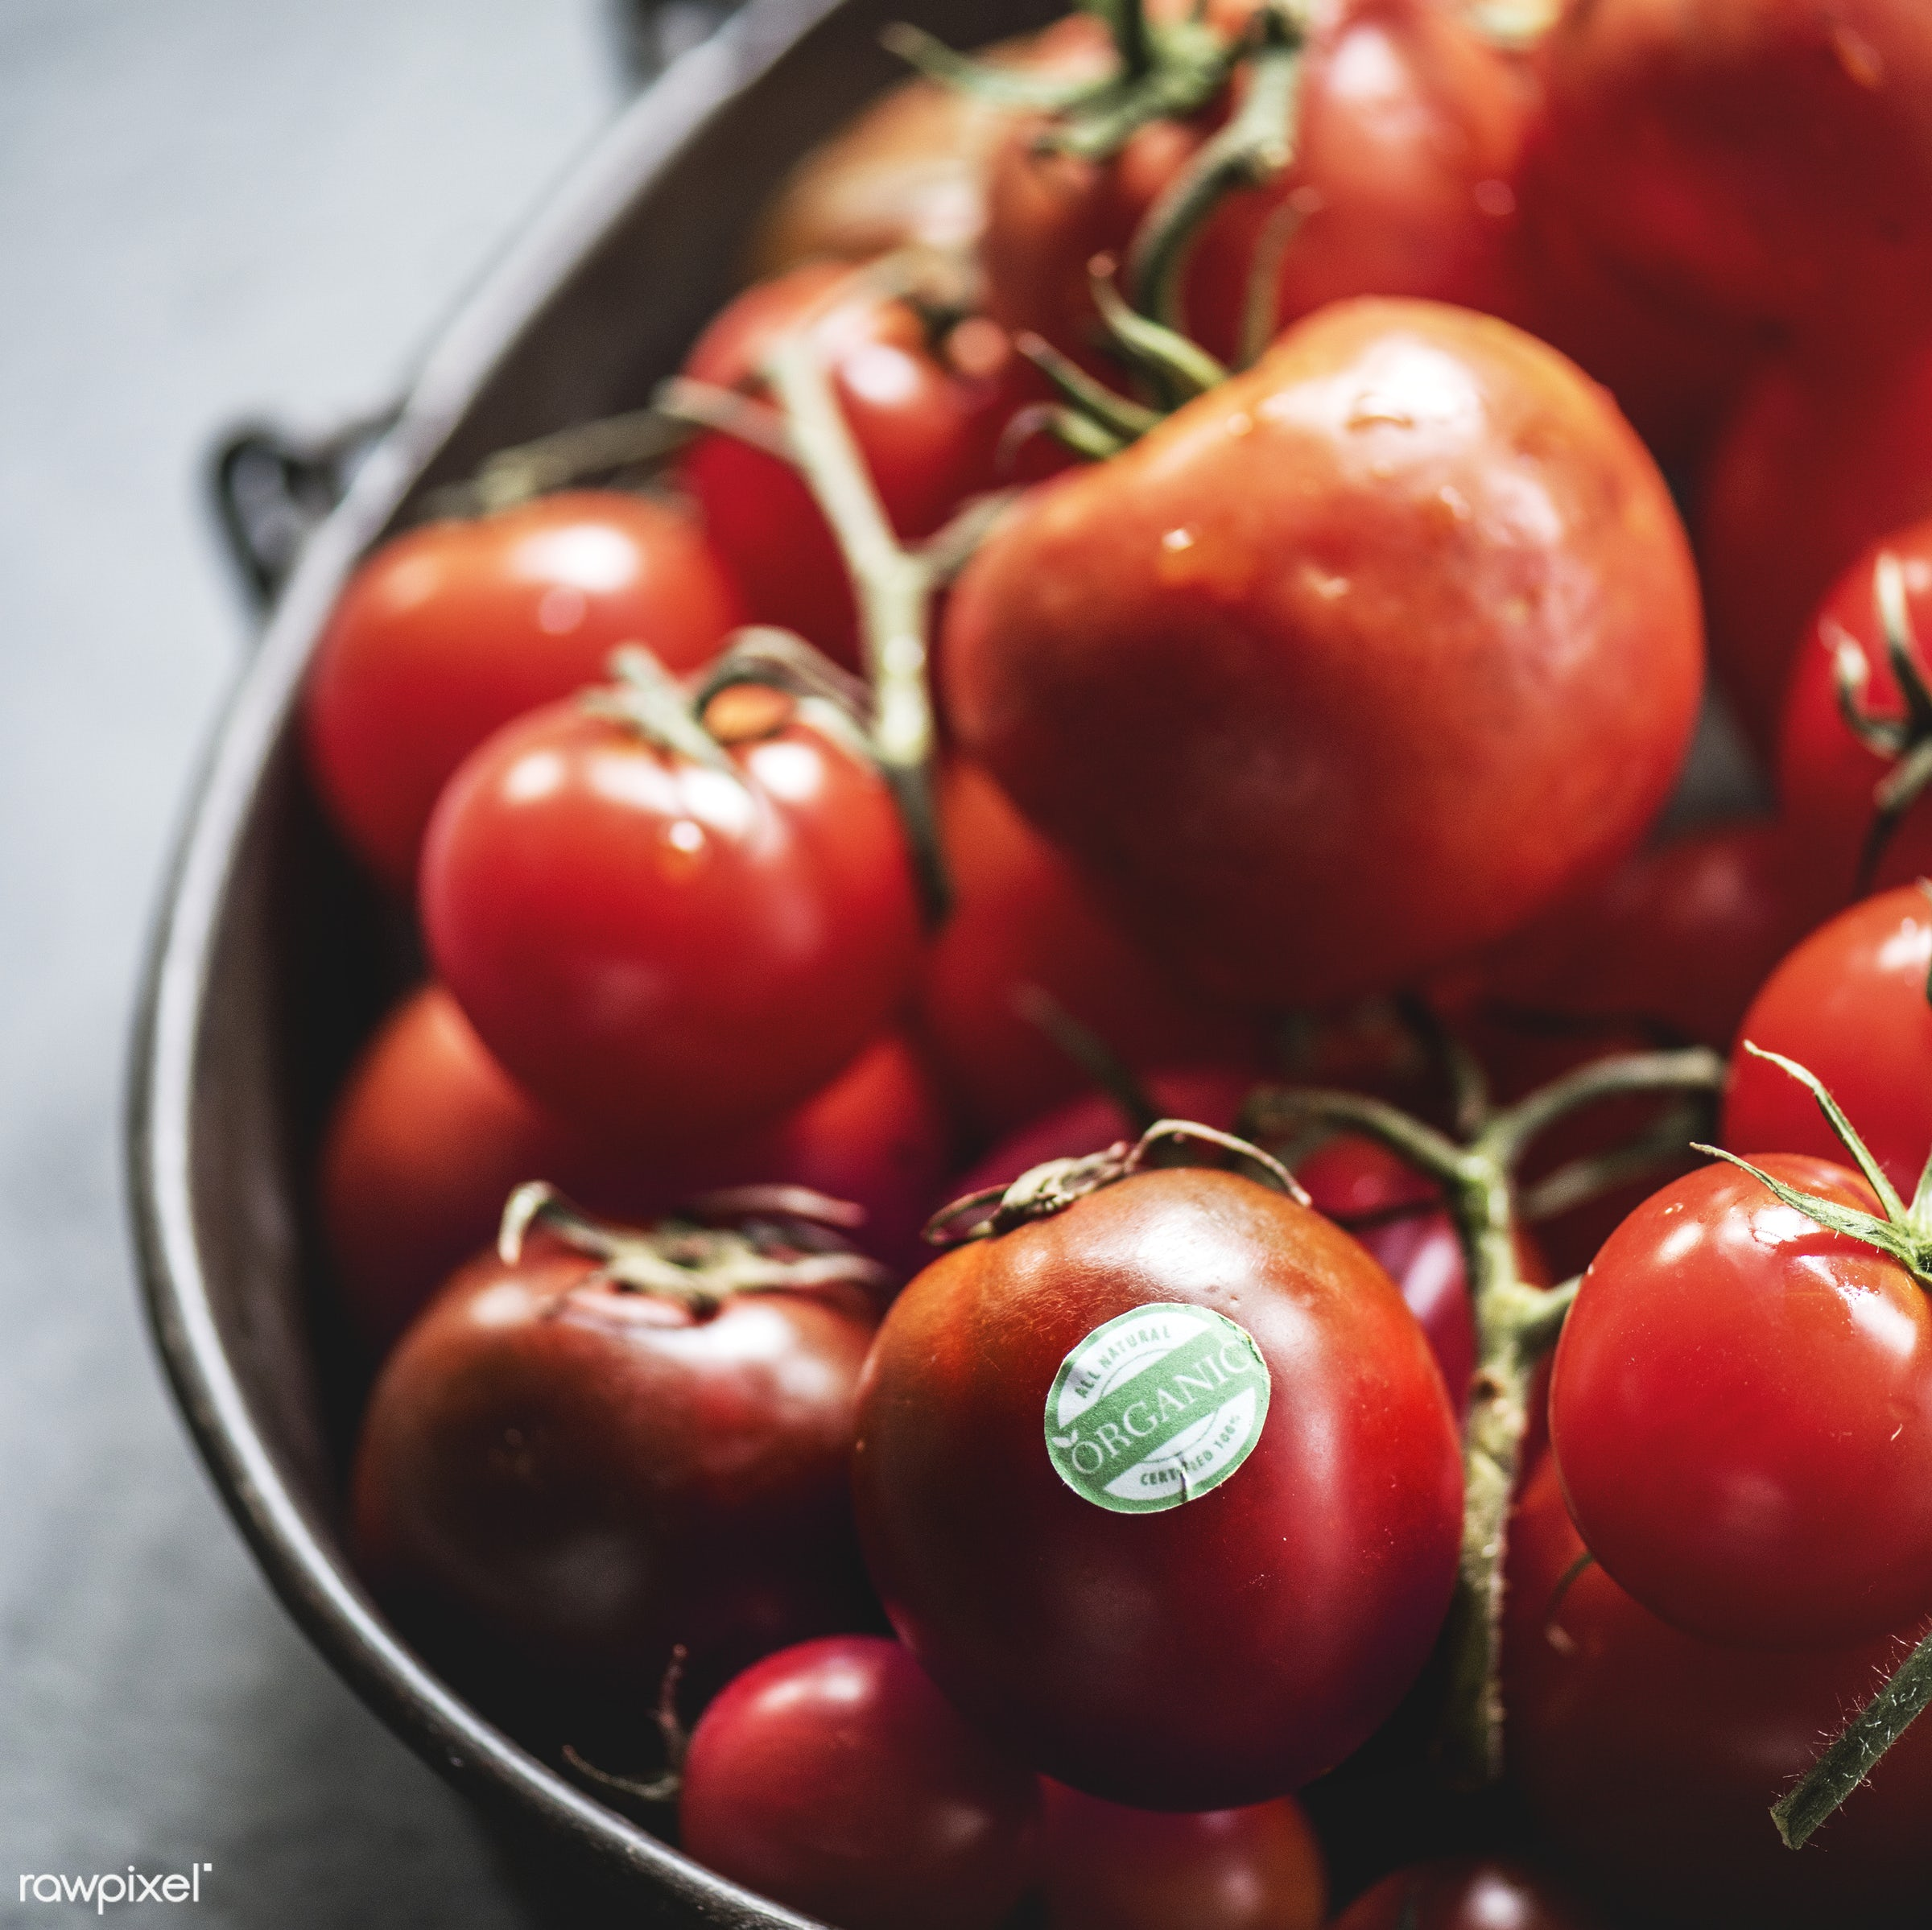 raw, nobody, agriculture, tomatoes, farm, real, organic, nature, fresh, food, healthy, harvest, vegetable, products, closeup